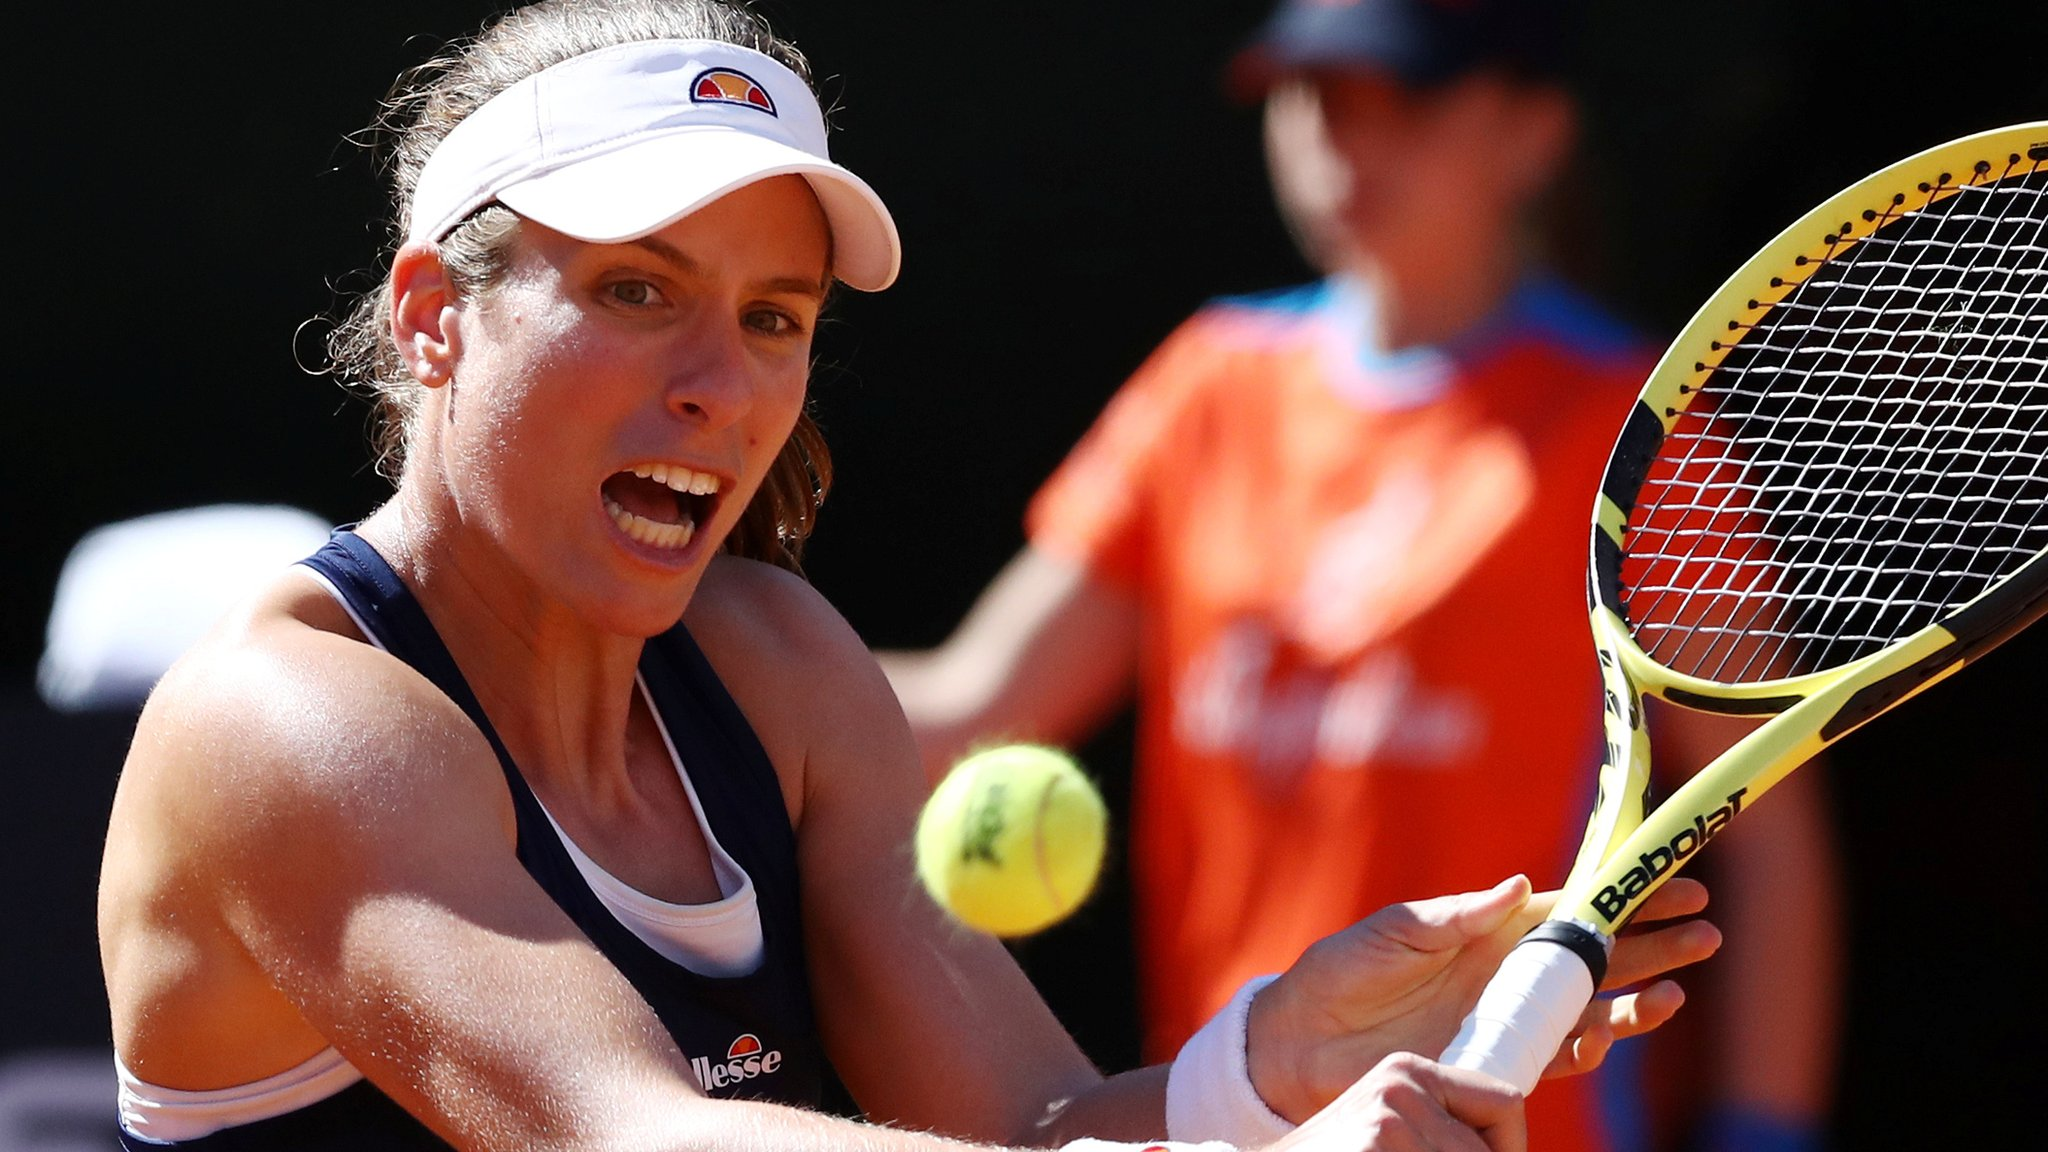 Konta wins twice in day to reach quarter-finals